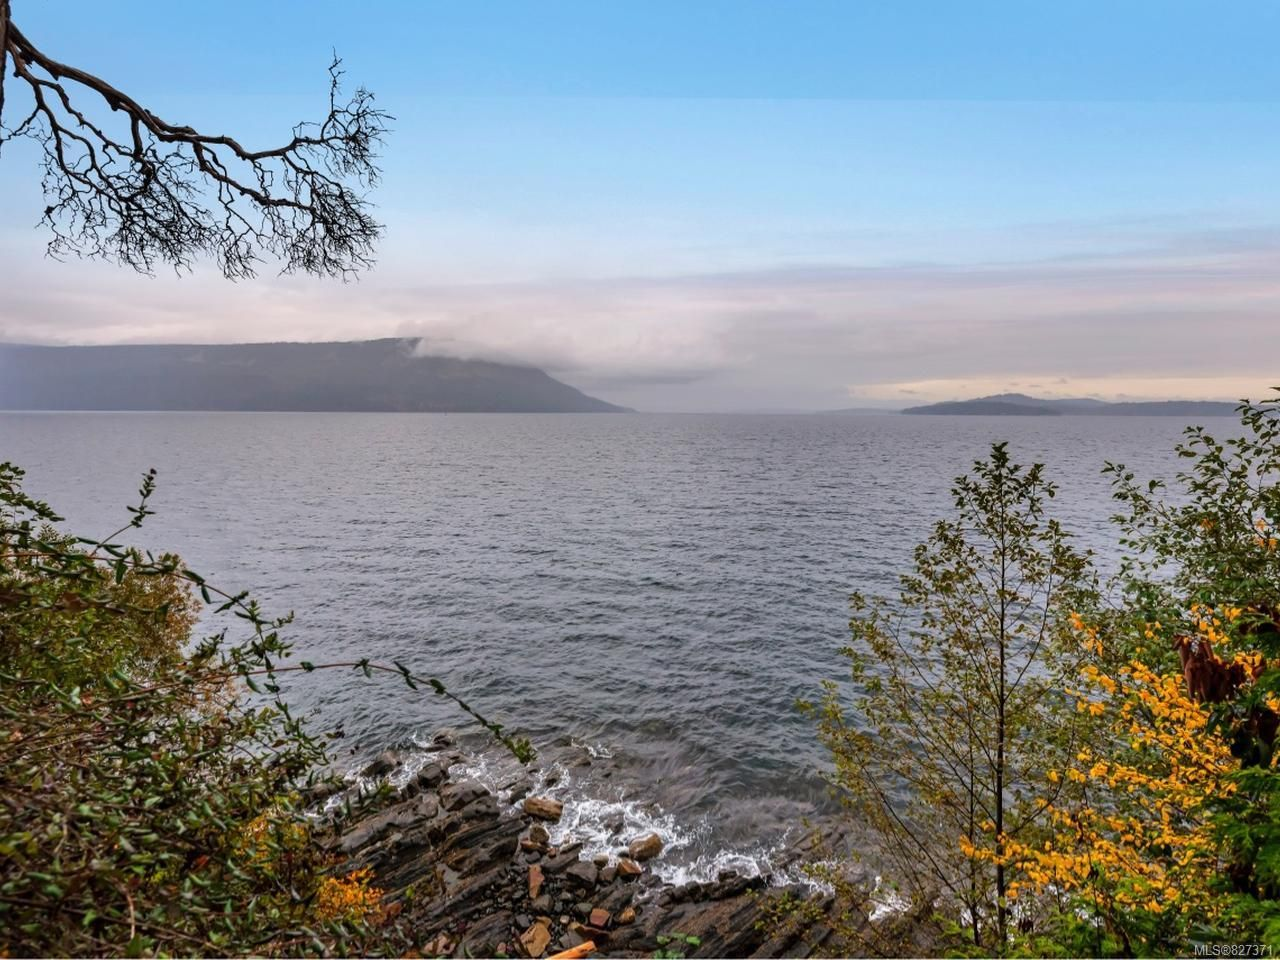 Main Photo: 3609 Crab Pot Lane in COBBLE HILL: ML Cobble Hill House for sale (Malahat & Area)  : MLS®# 827371